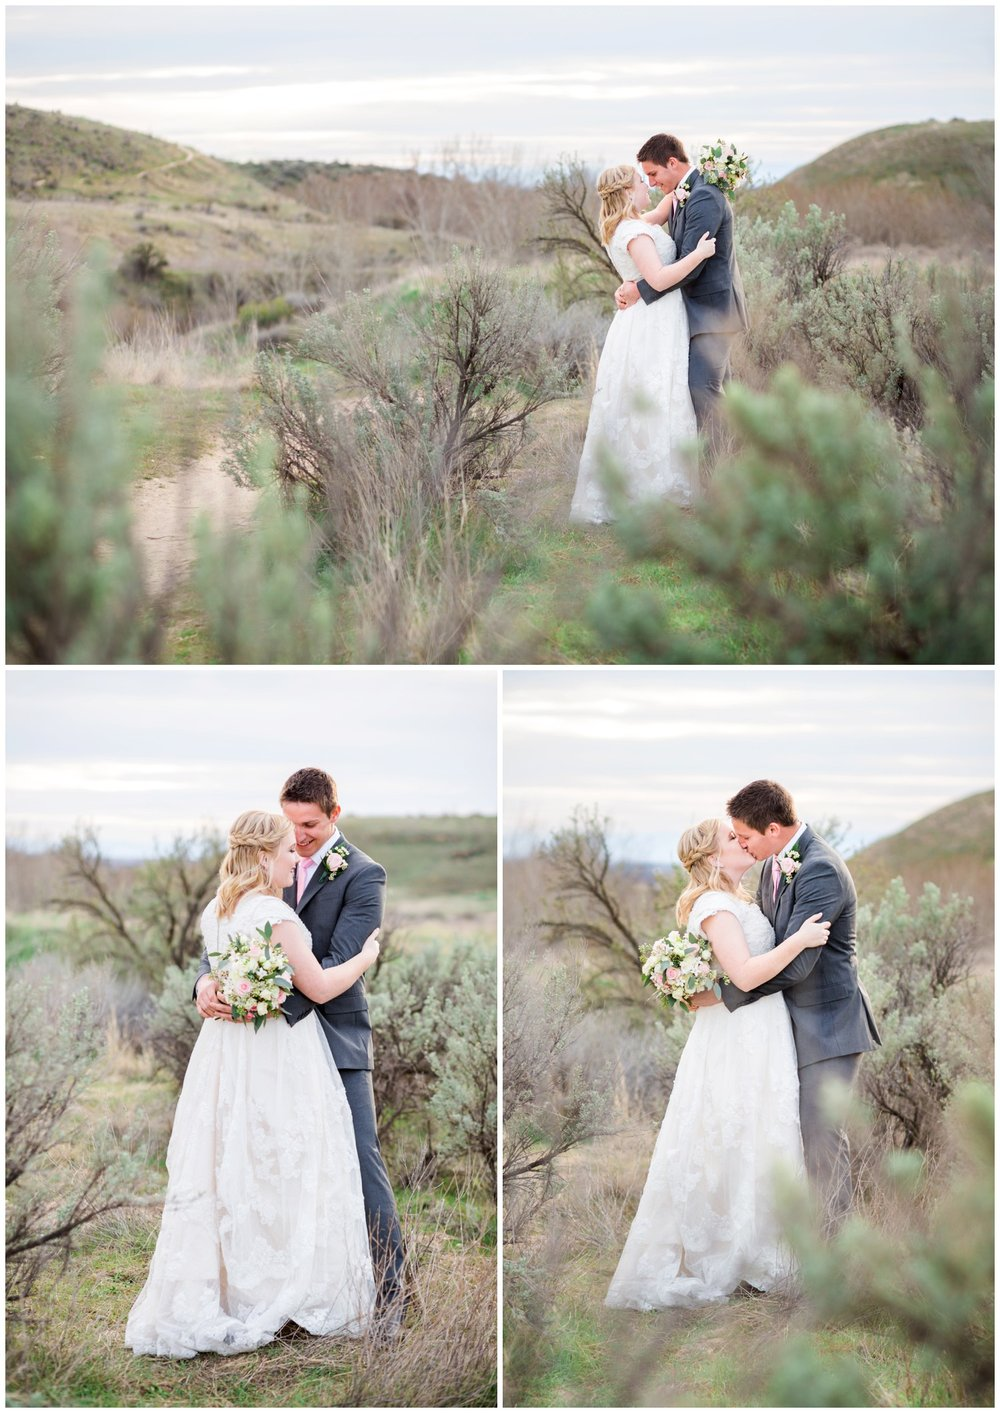 Bride and Groom portraits on hillside at sunset with sagebrush.